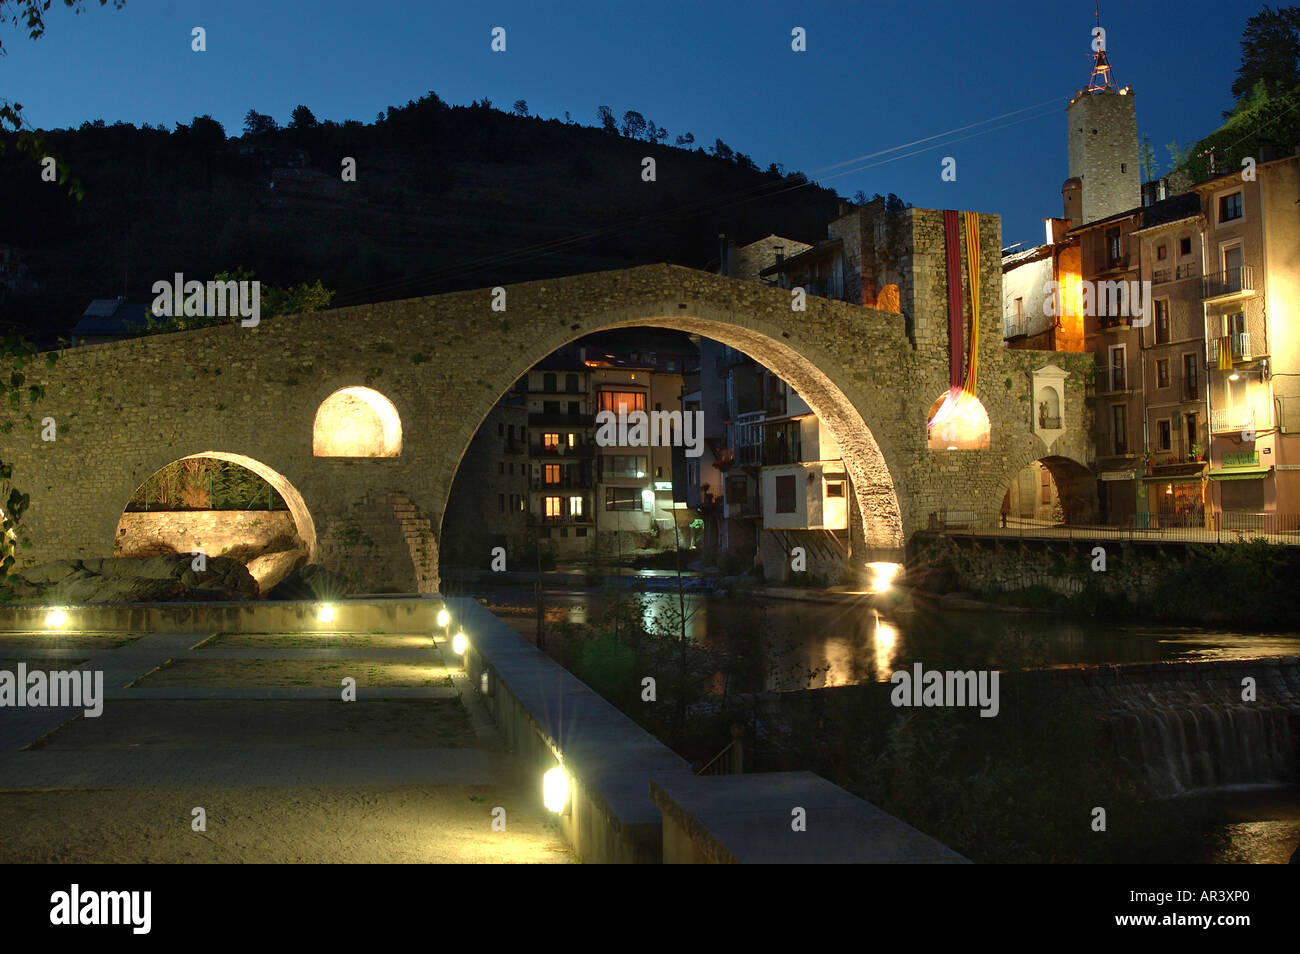 Pont Nou 12th century and Ter River Camprodon Ripolles Girona province Catalonia Spain - Stock Image